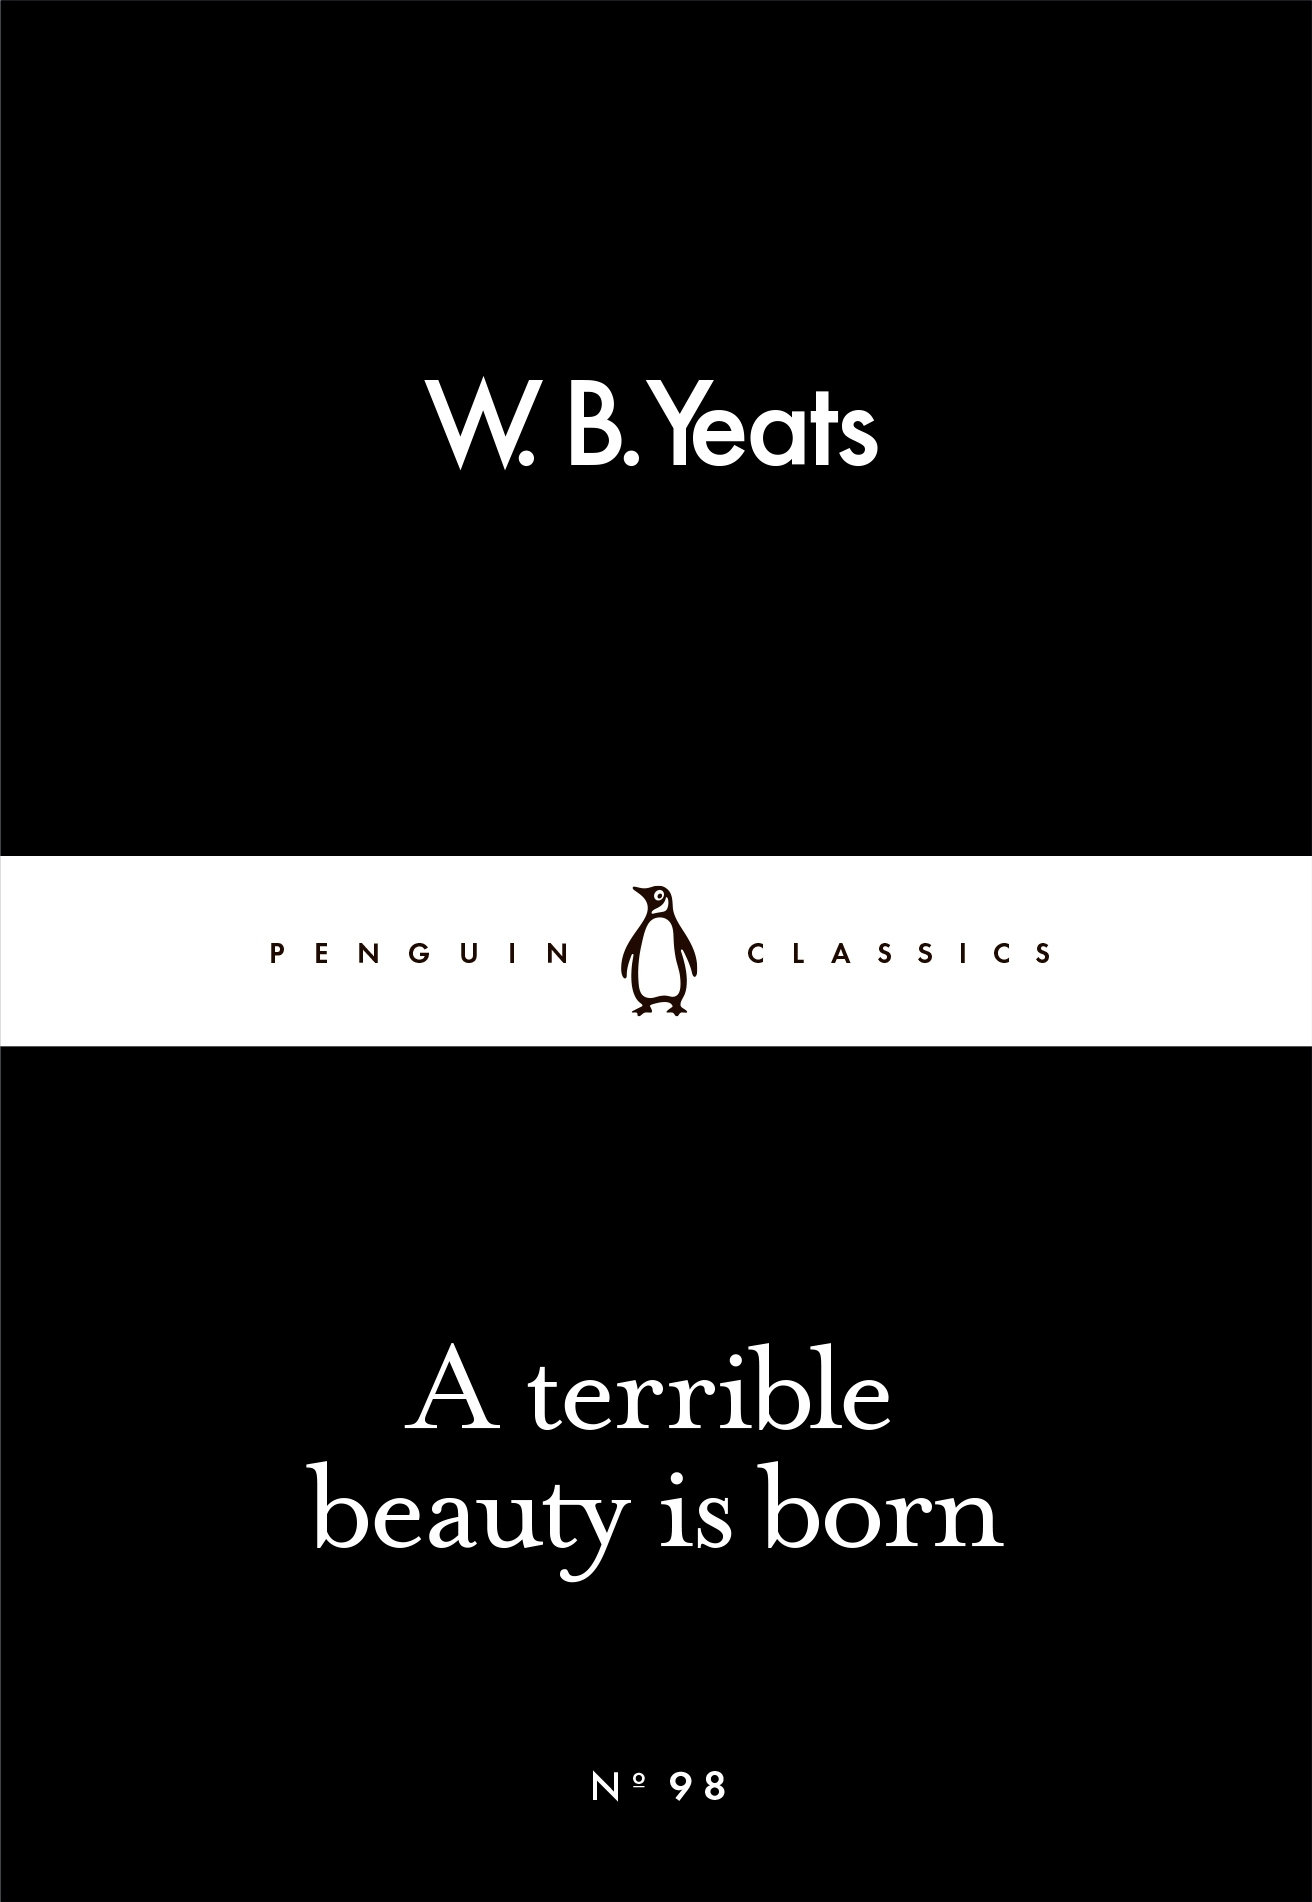 a terrible beauty is born On a terrible beauty is born by francis duggan the seemingly immortal words of yeats poem a terrible beauty is born the classic poetry anthologies of the english speaking world does adorn when he.